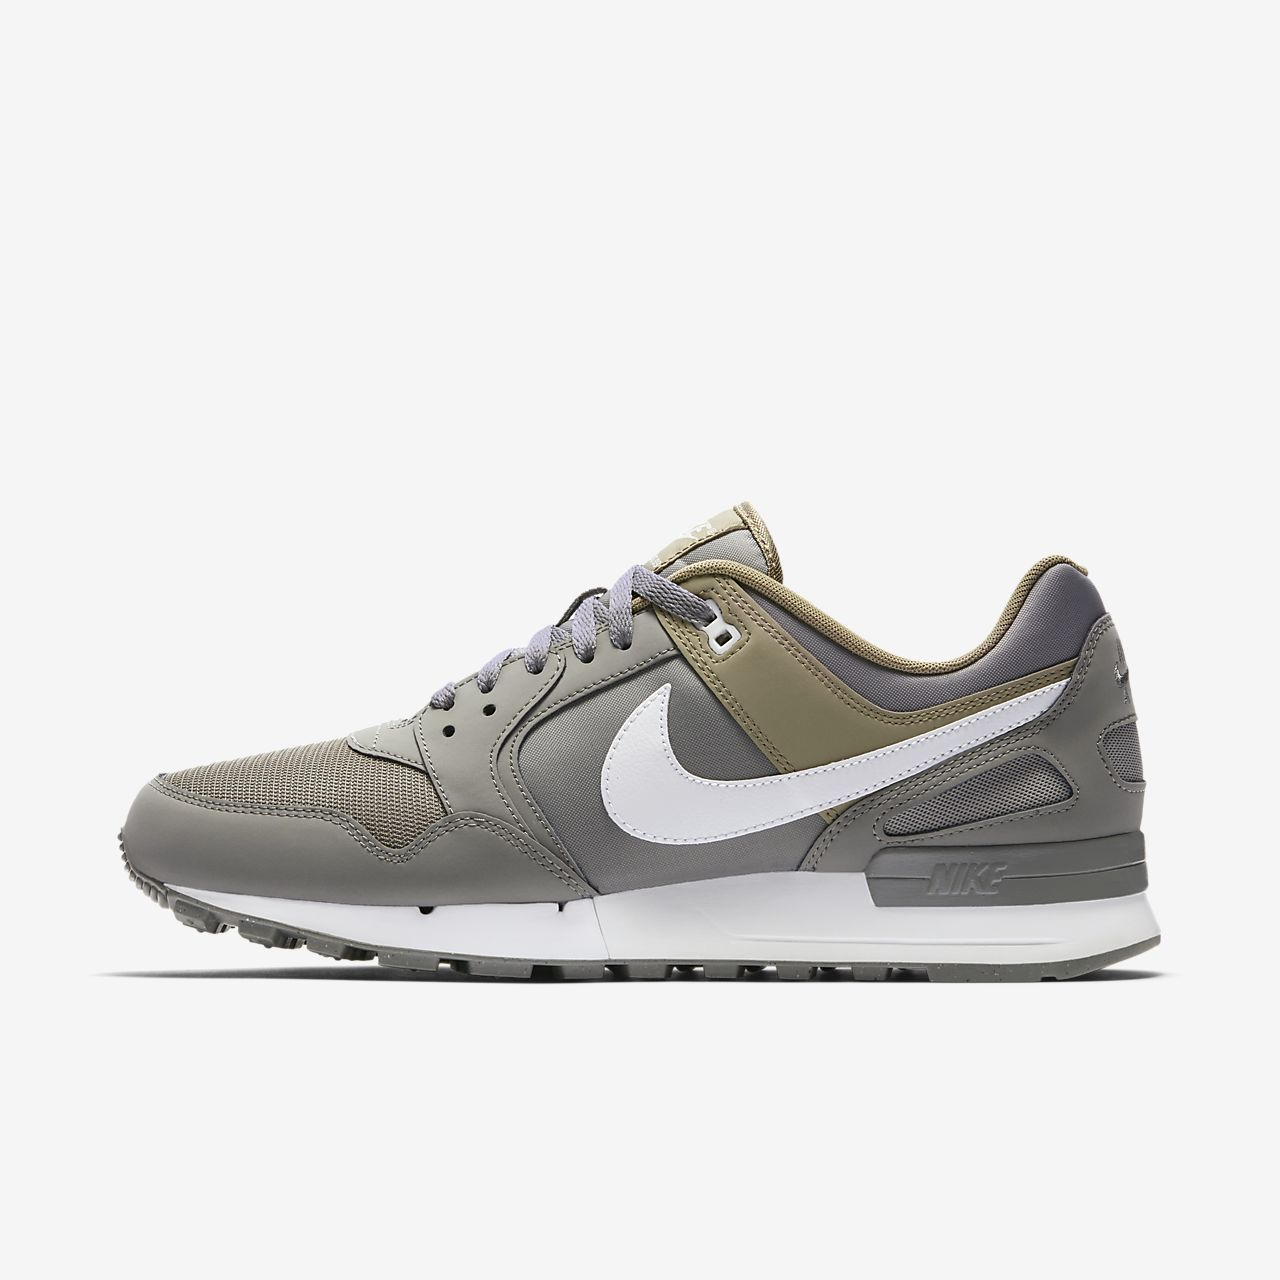 nike air max pegasus 89 nz